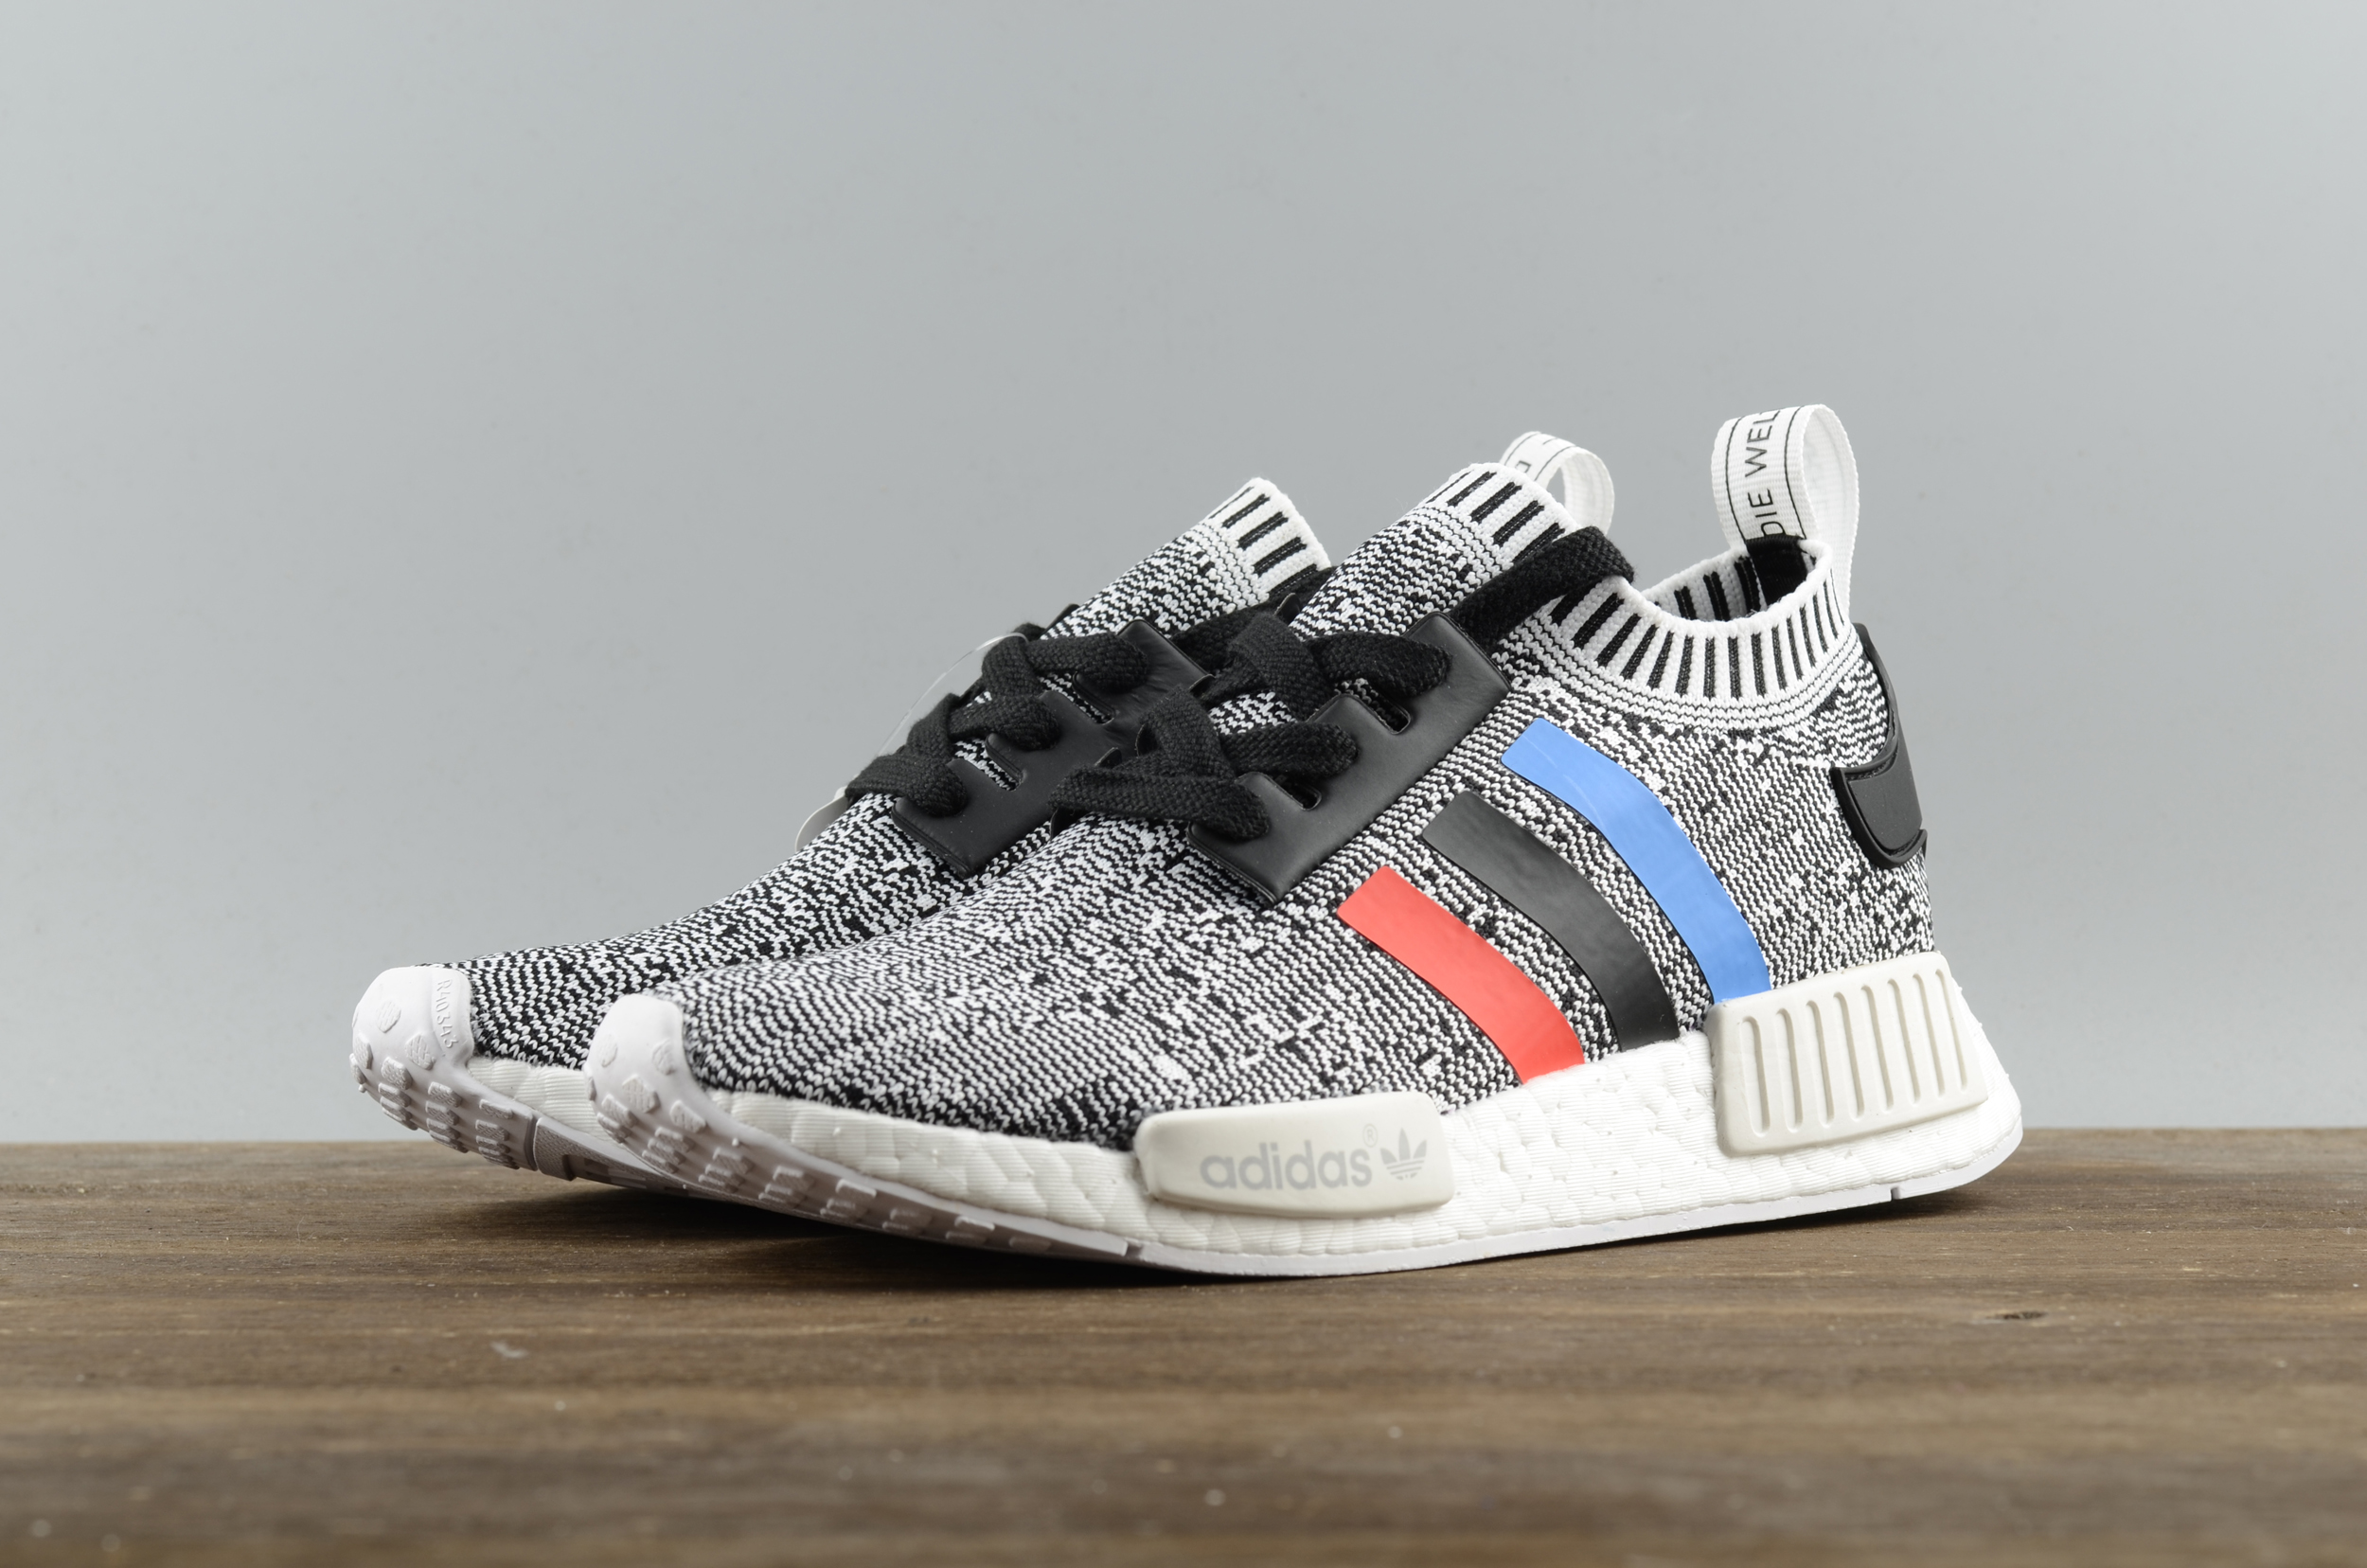 083d7f3babc18 Adidas NMD R1 Boost runner white Gray line shoes - Thumbnail 1 ...